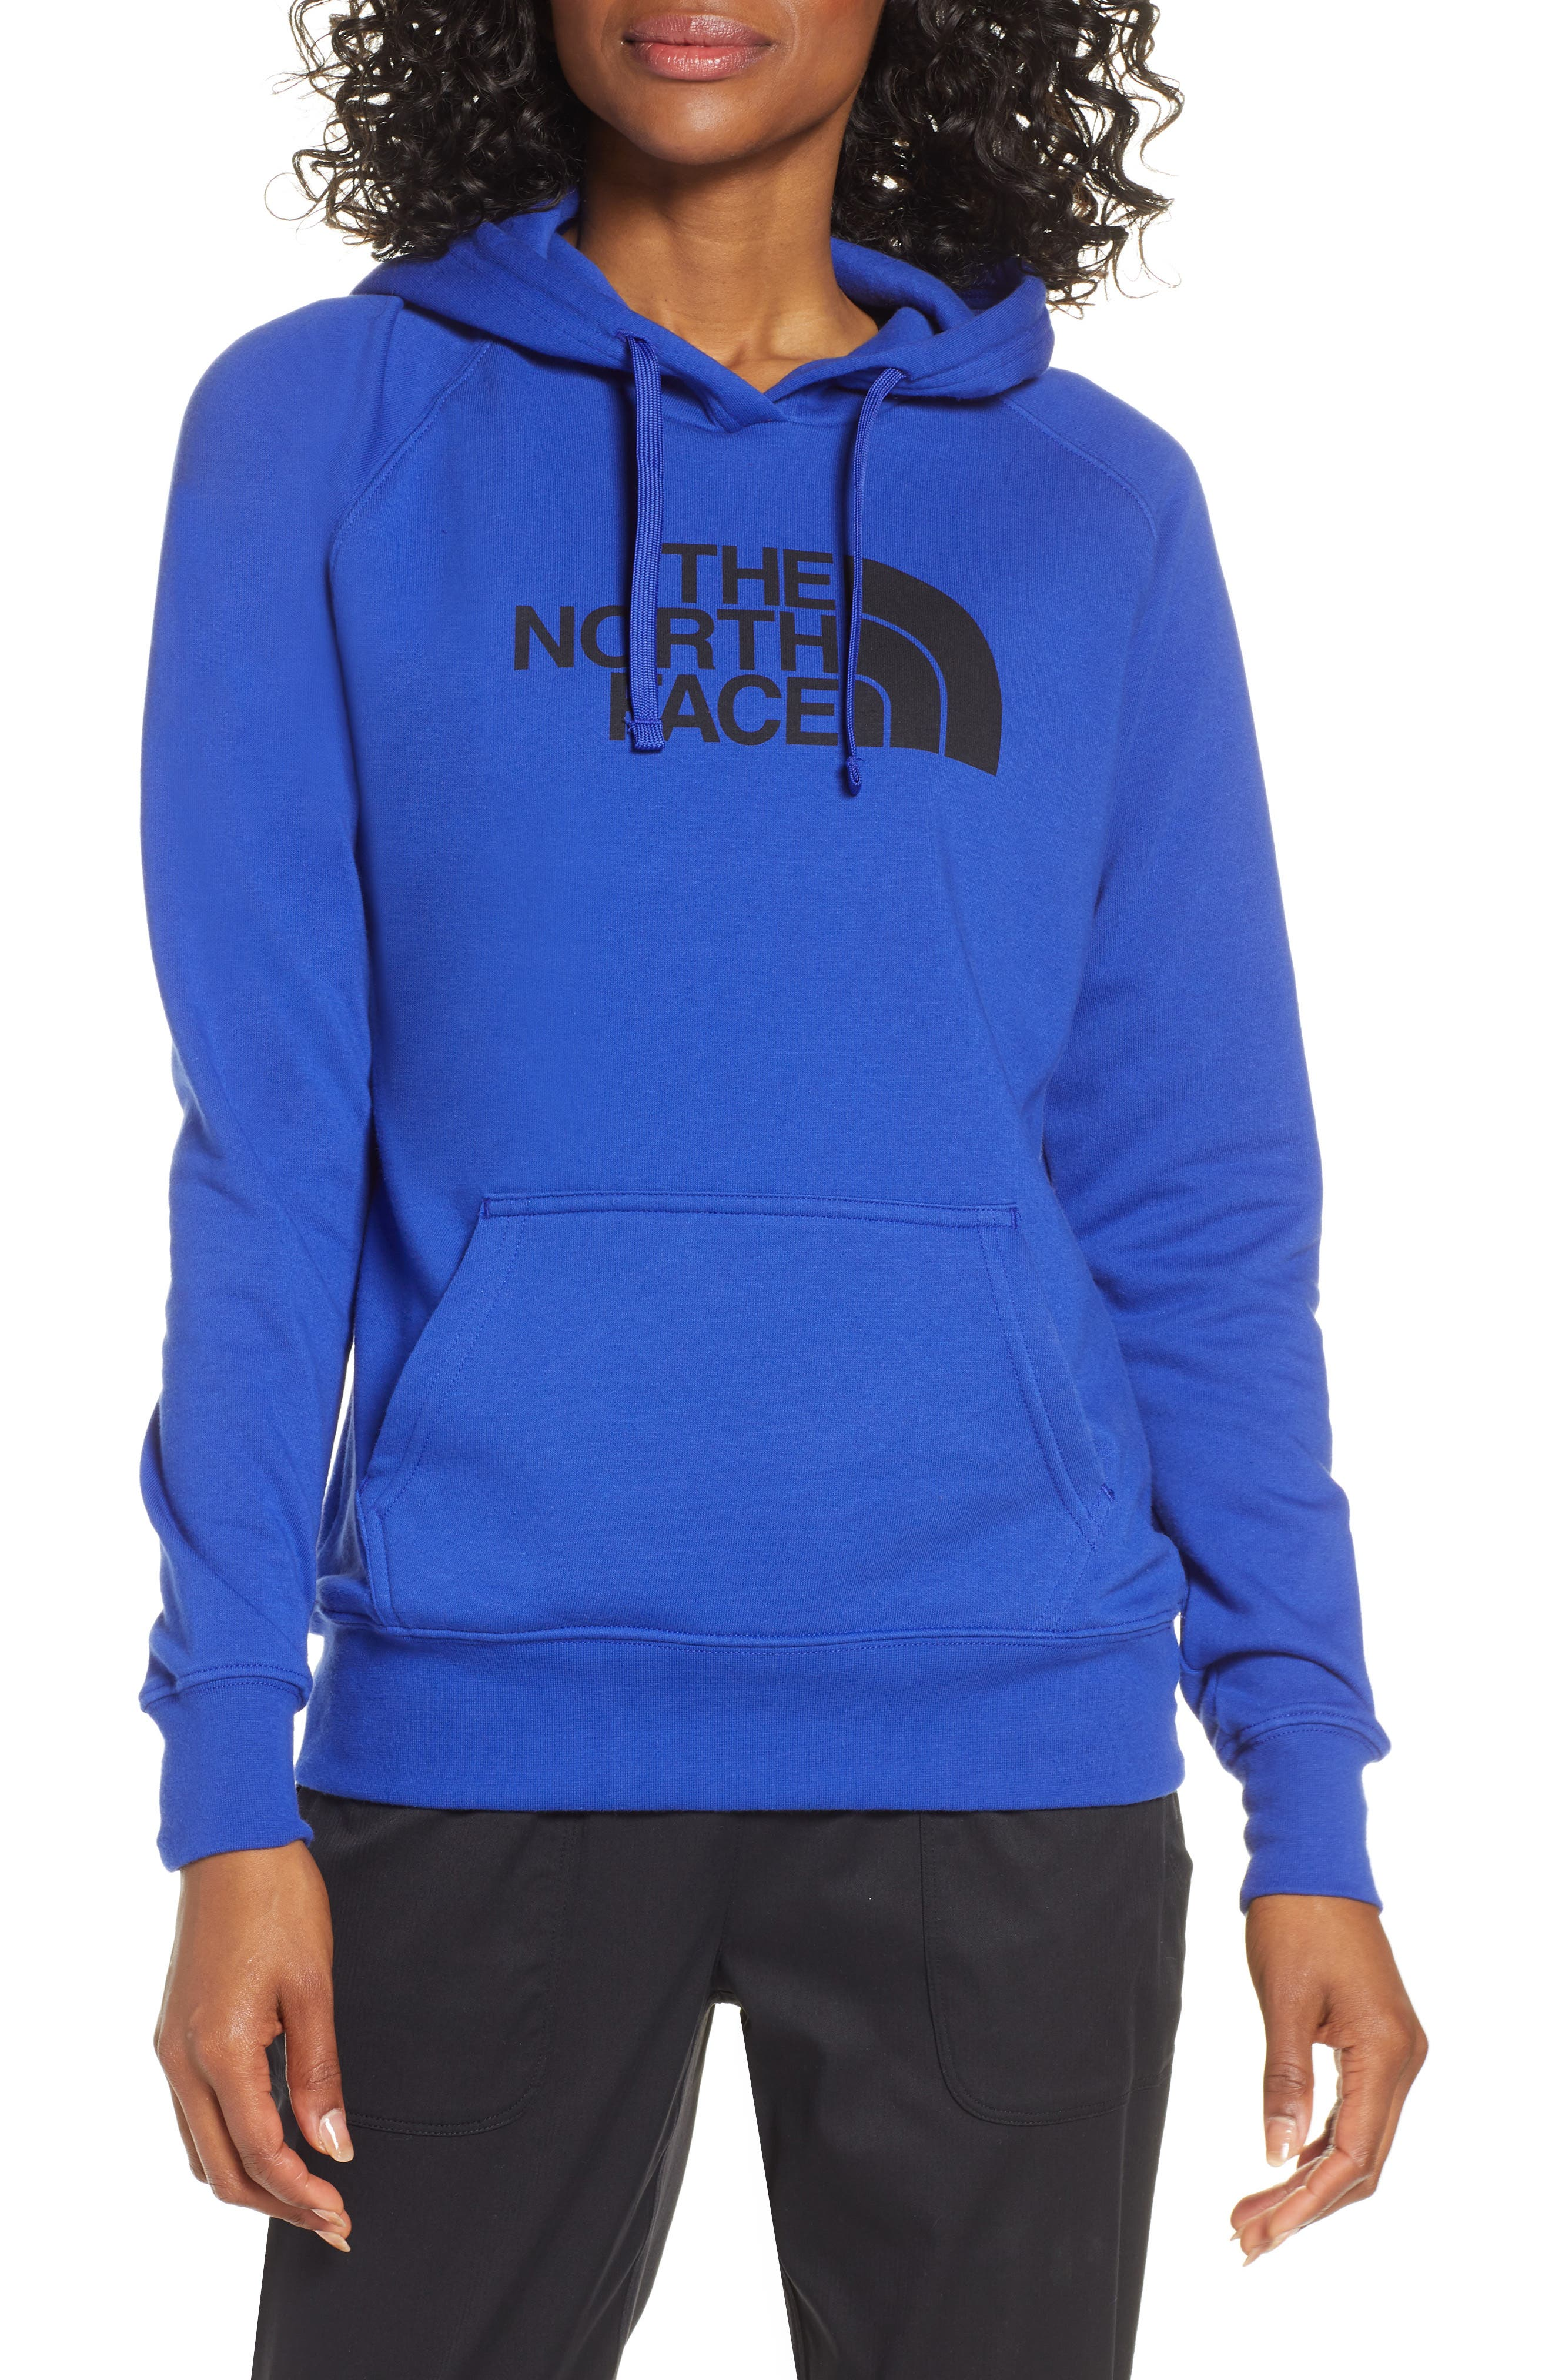 THE NORTH FACE, Half Dome Hoodie, Main thumbnail 1, color, AZTEC BLUE/ TNF BLACK